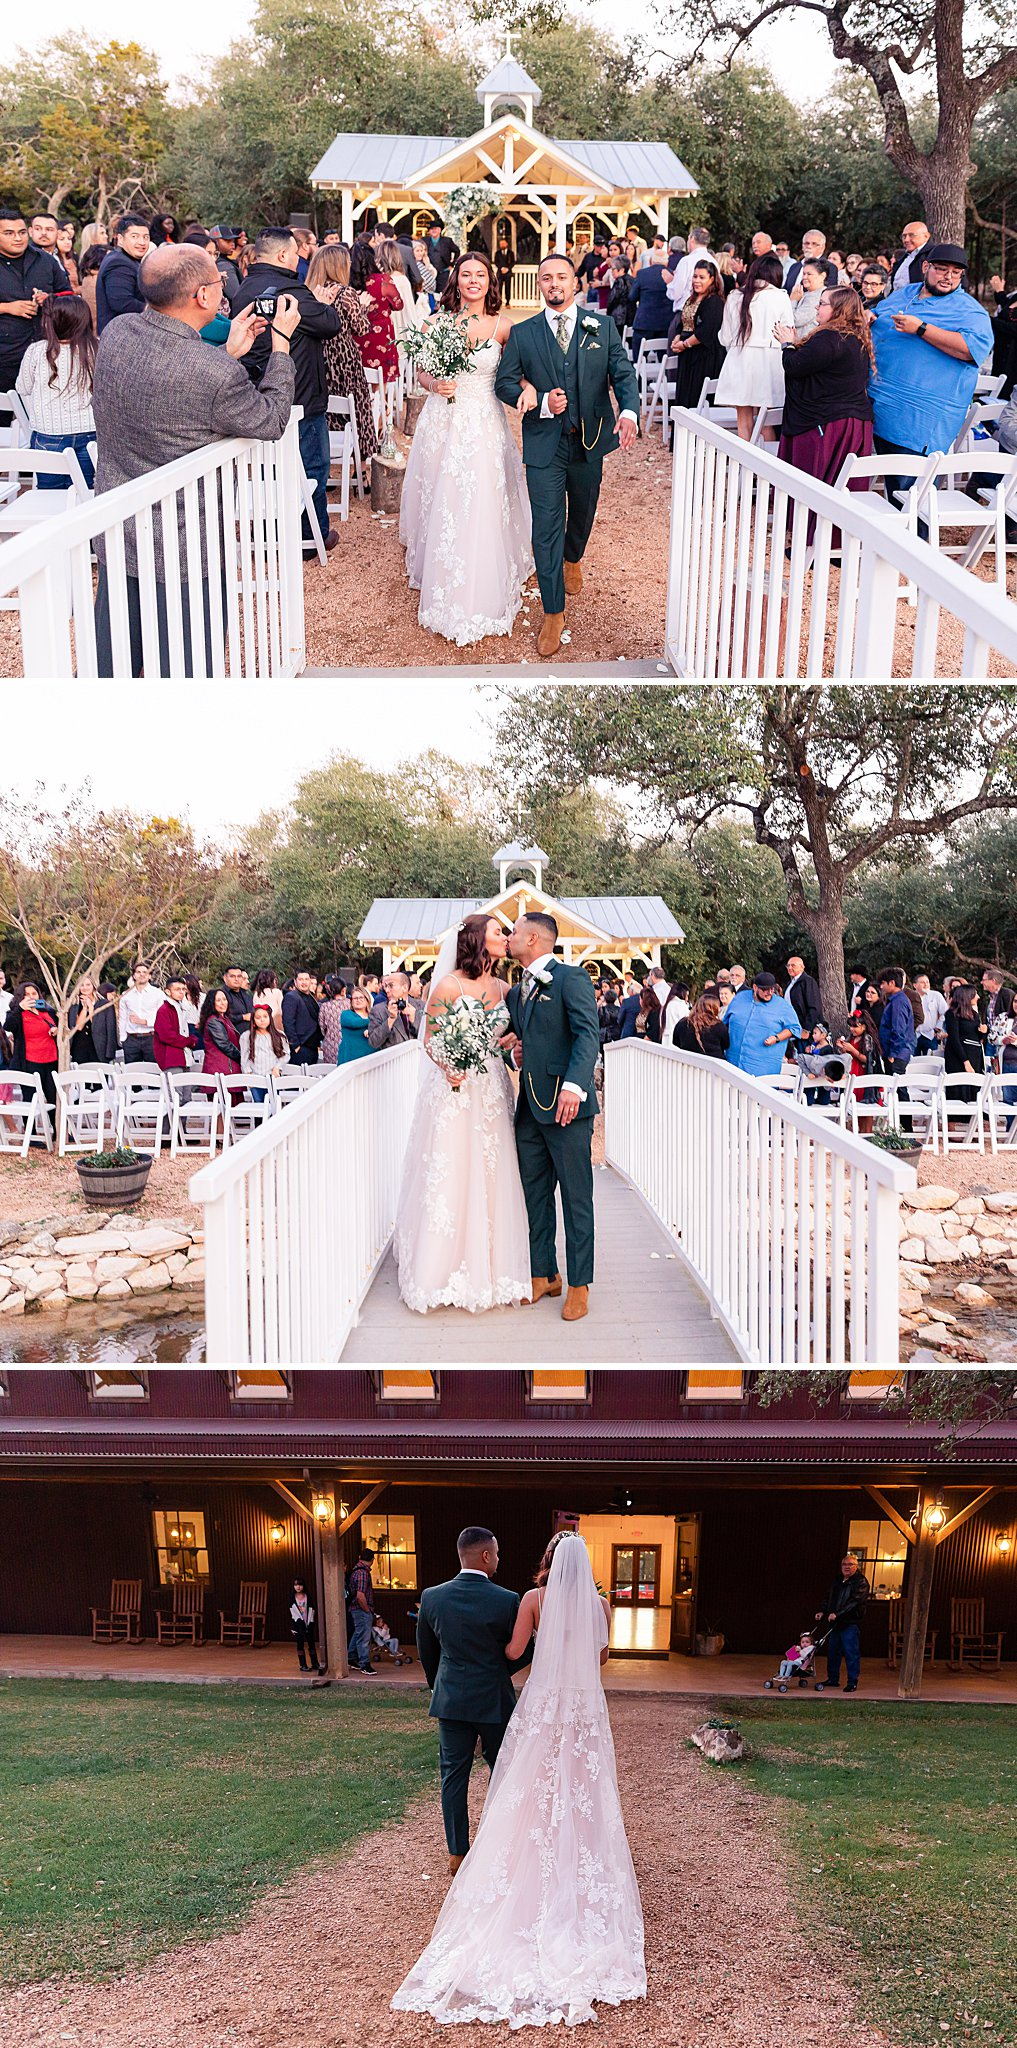 Carly-Barton-Photography-Texas-Wedding-Photographer-Western-Sky-Wedding-Event-Venue-Emerald-Green-Theme_0024.jpg